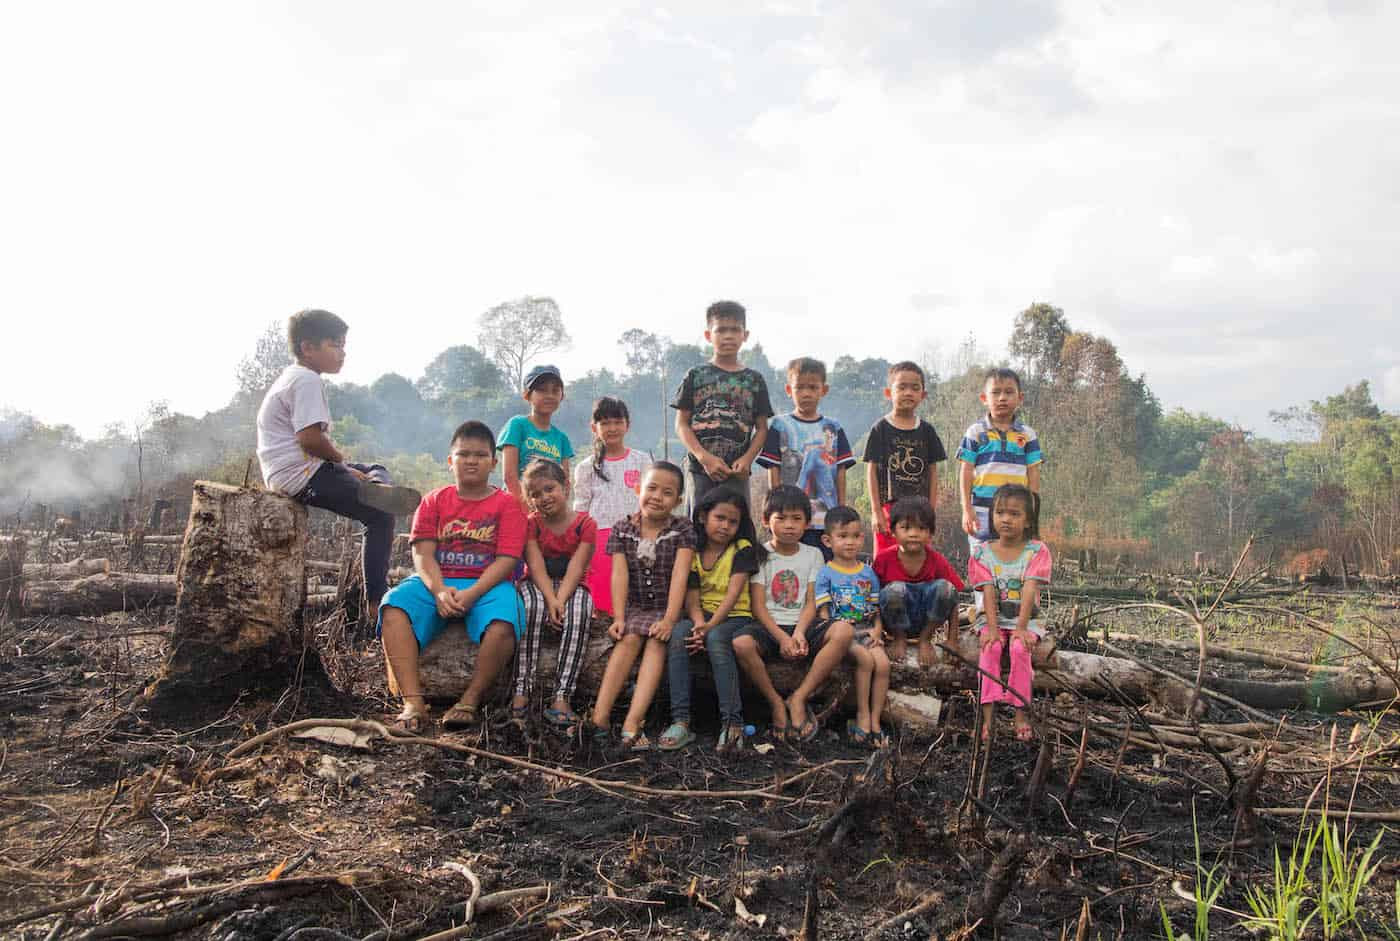 A group of children sit outside in a burned field. In the background is forest and smoke rising into the sky.